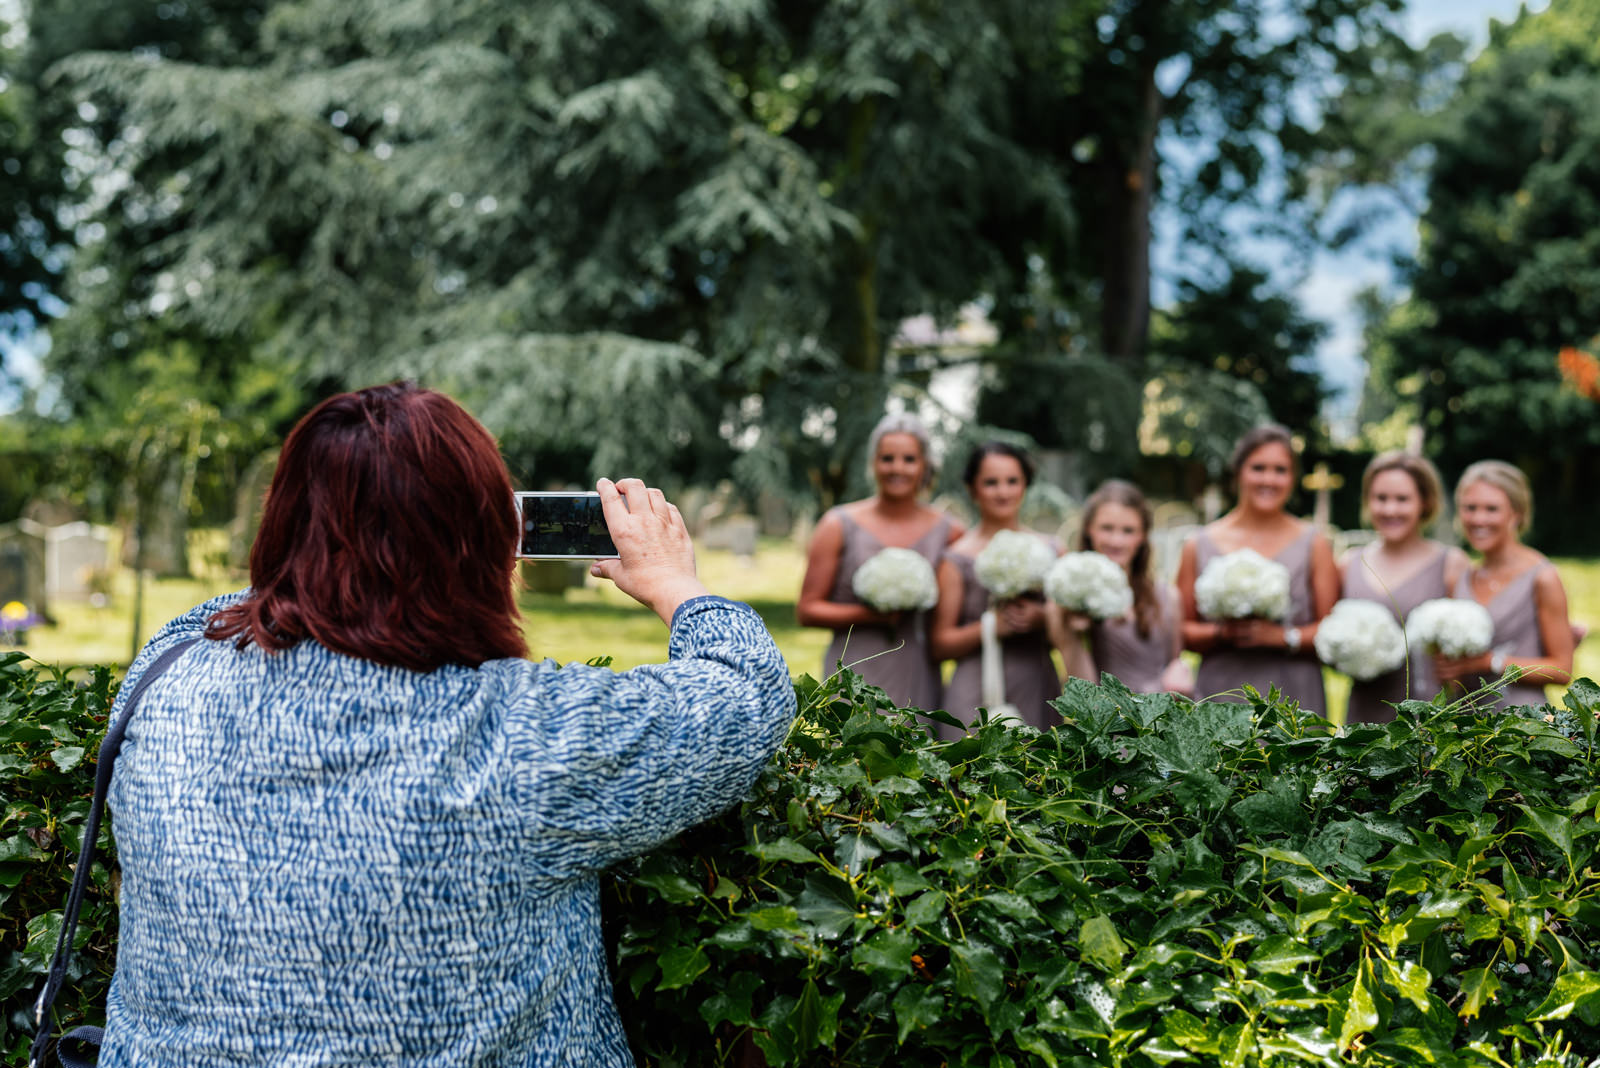 onlooking taking photo of bridesmaids